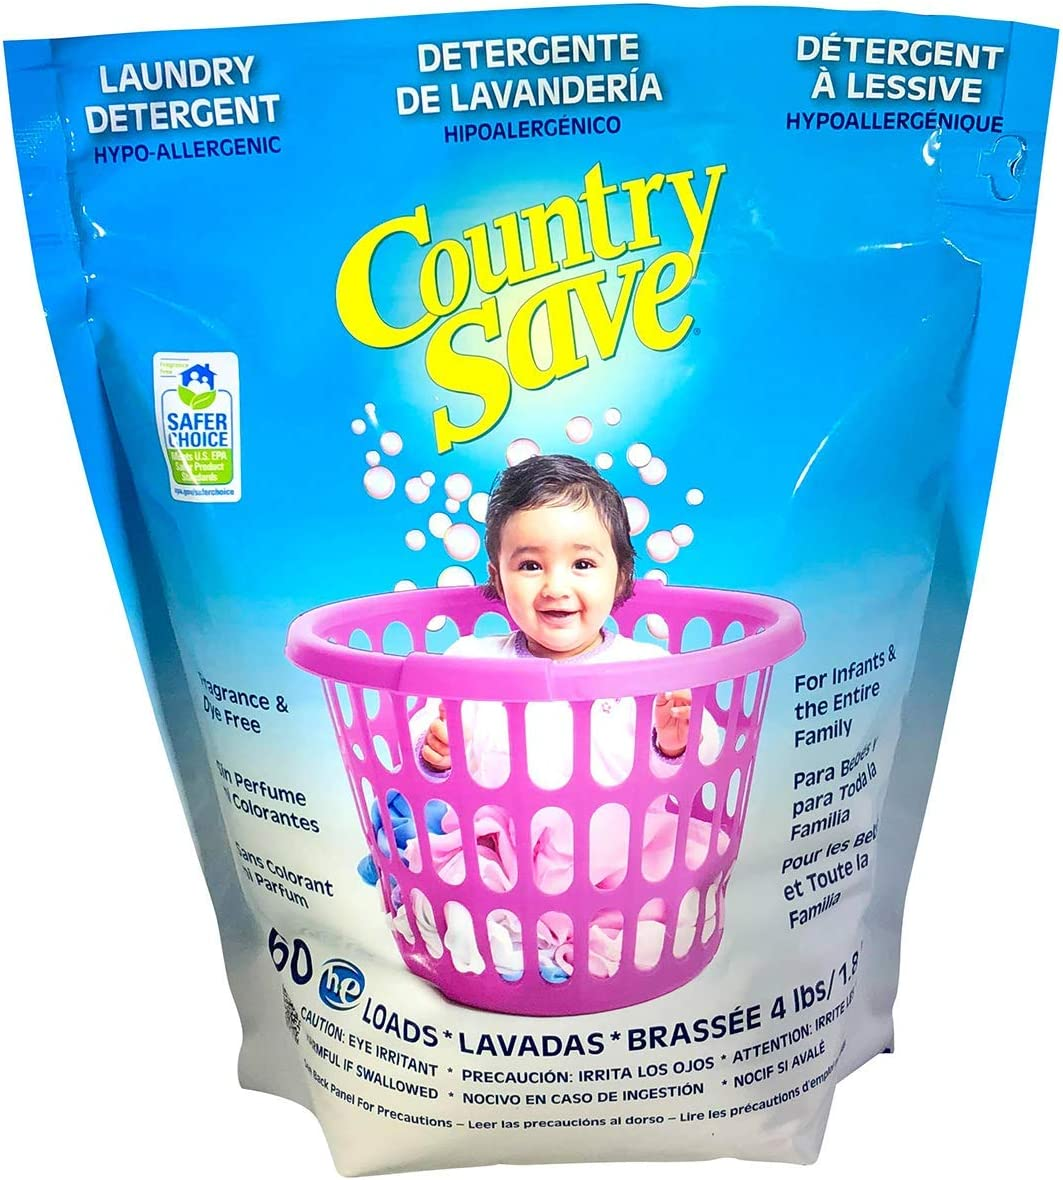 Country Save Baby Powdered Detergent, 60 Loads, for The Entire Family